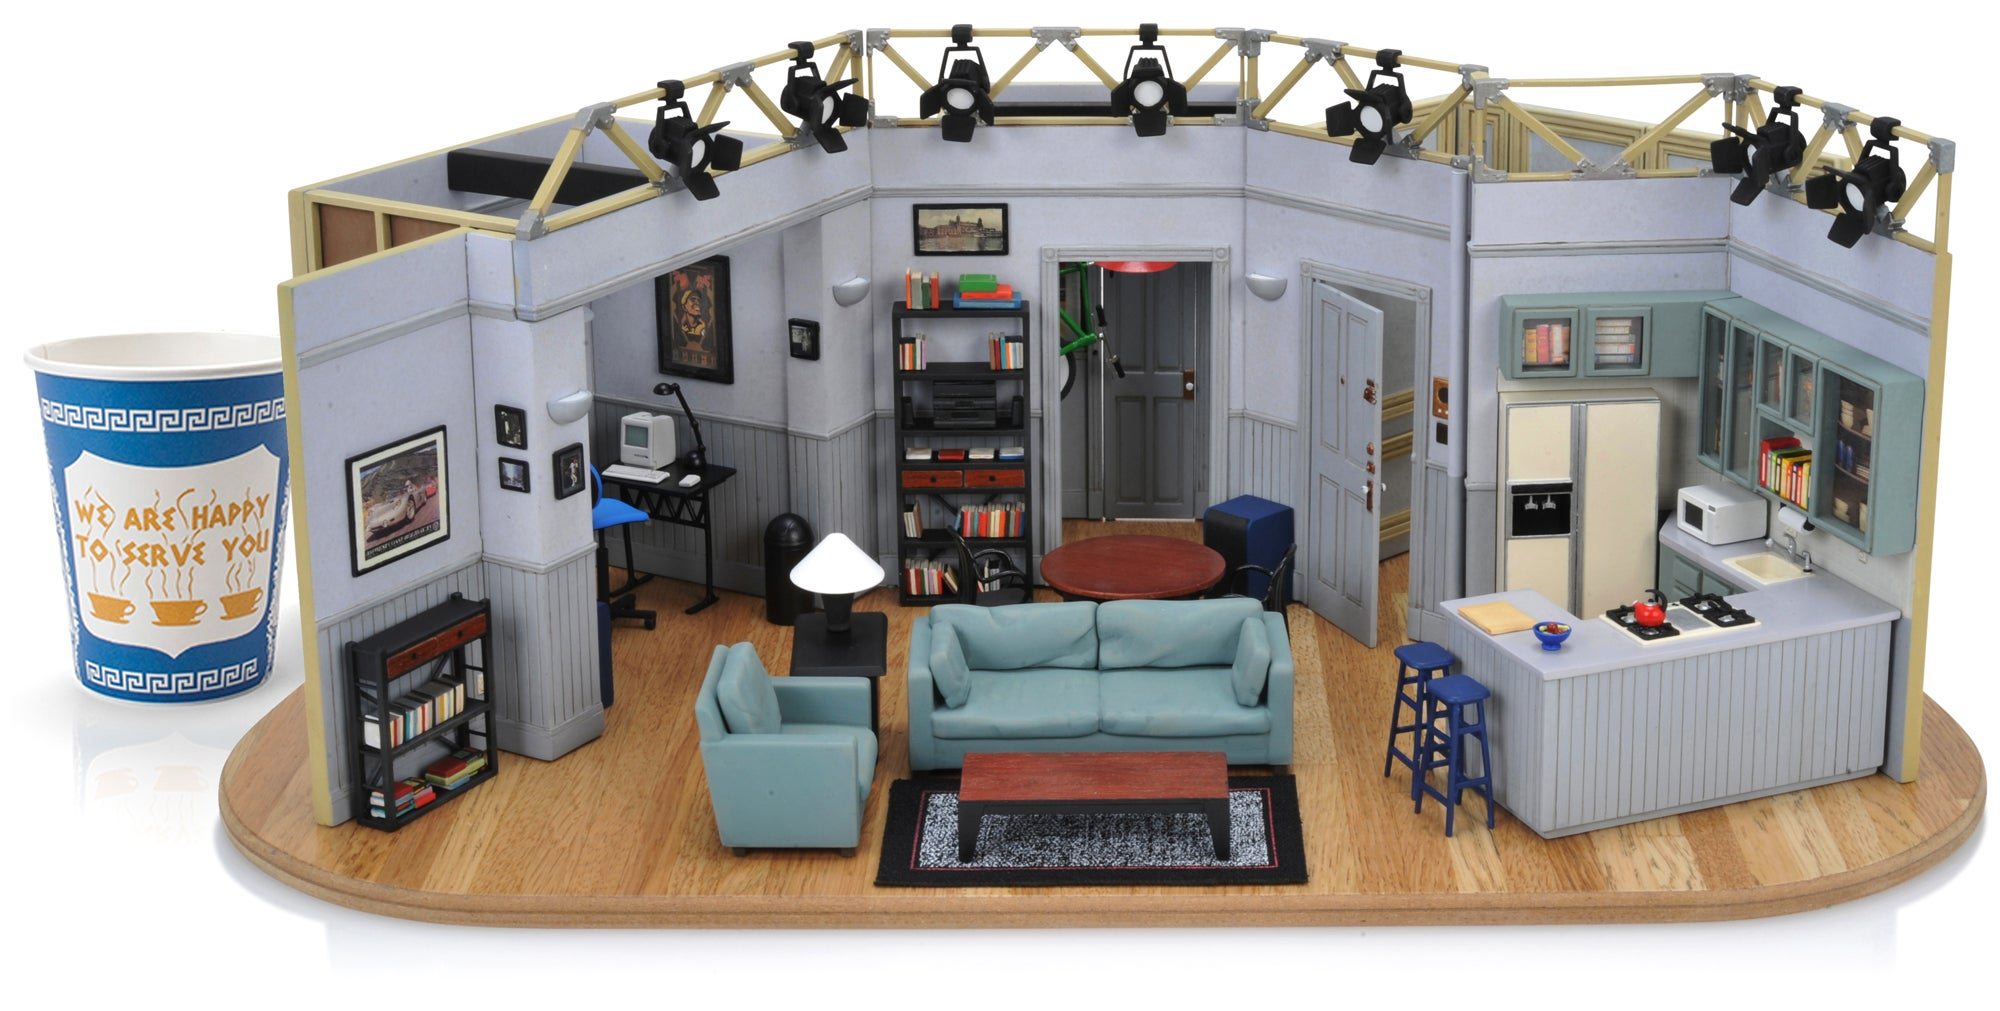 This Flawlessly Detailed Tiny Replica Of Seinfeld's Apartment Costs $US400